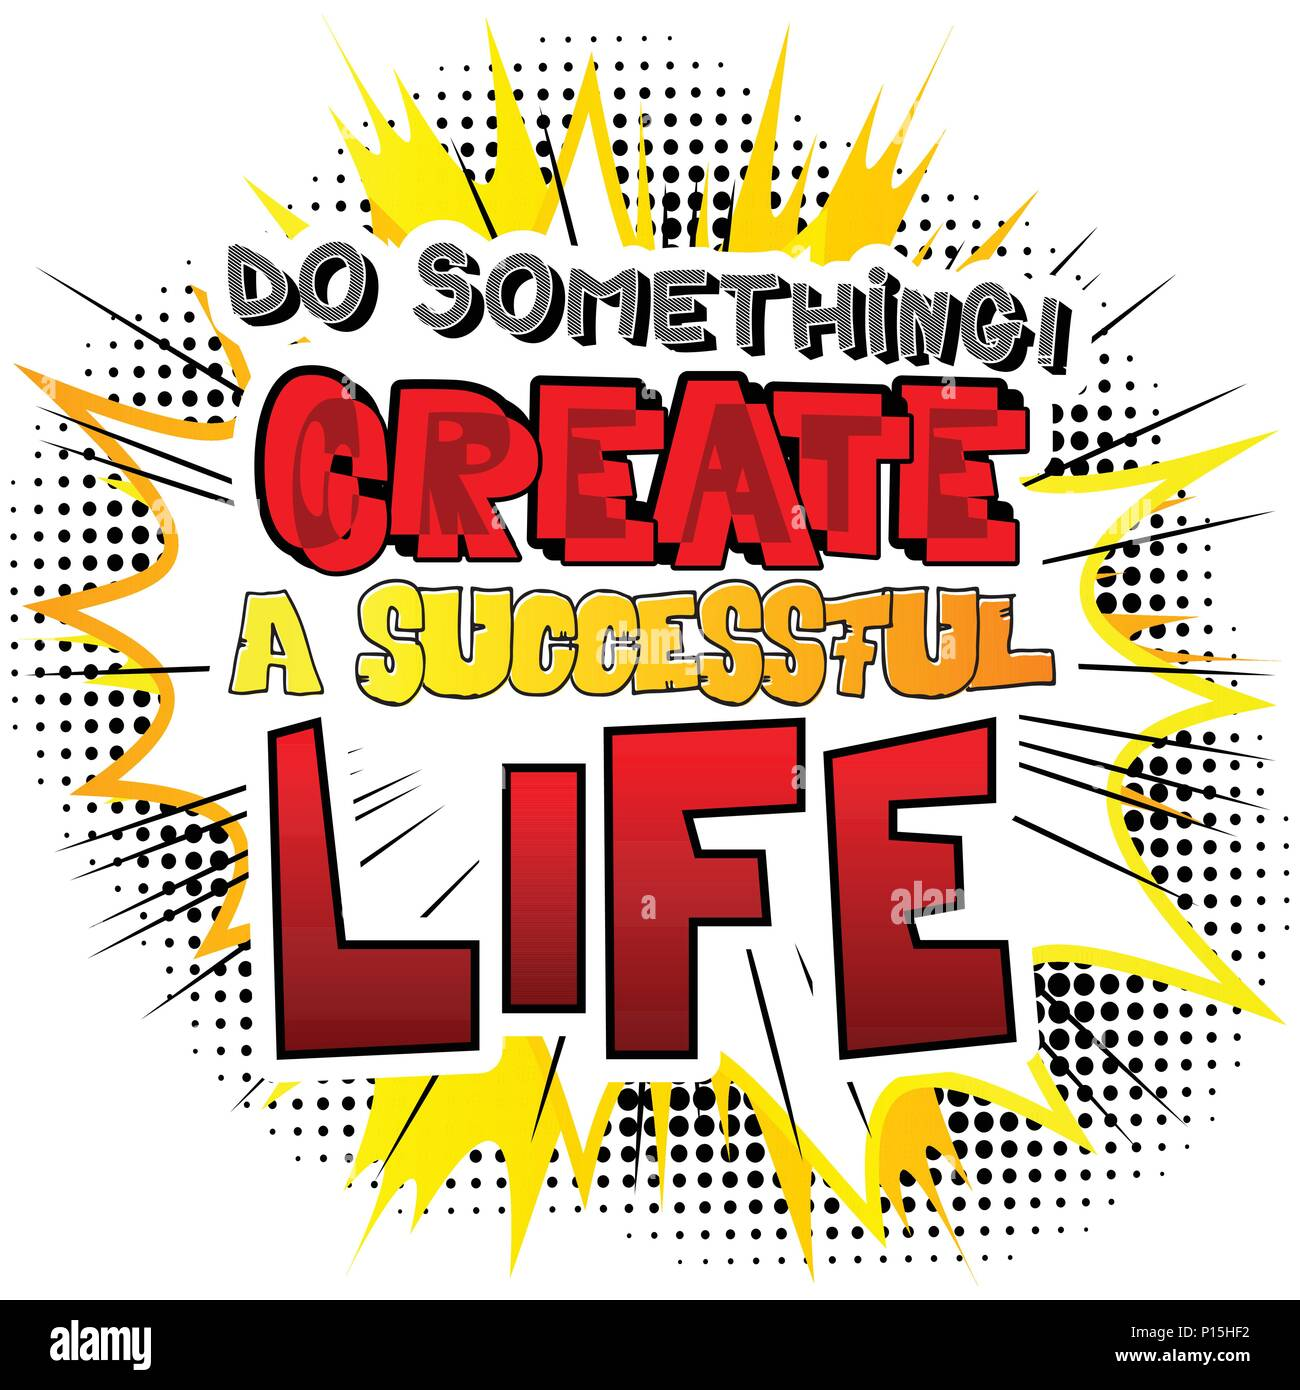 Do something! Create a Successful Life. Vector illustrated comic book style design. Inspirational, motivational quote. - Stock Vector